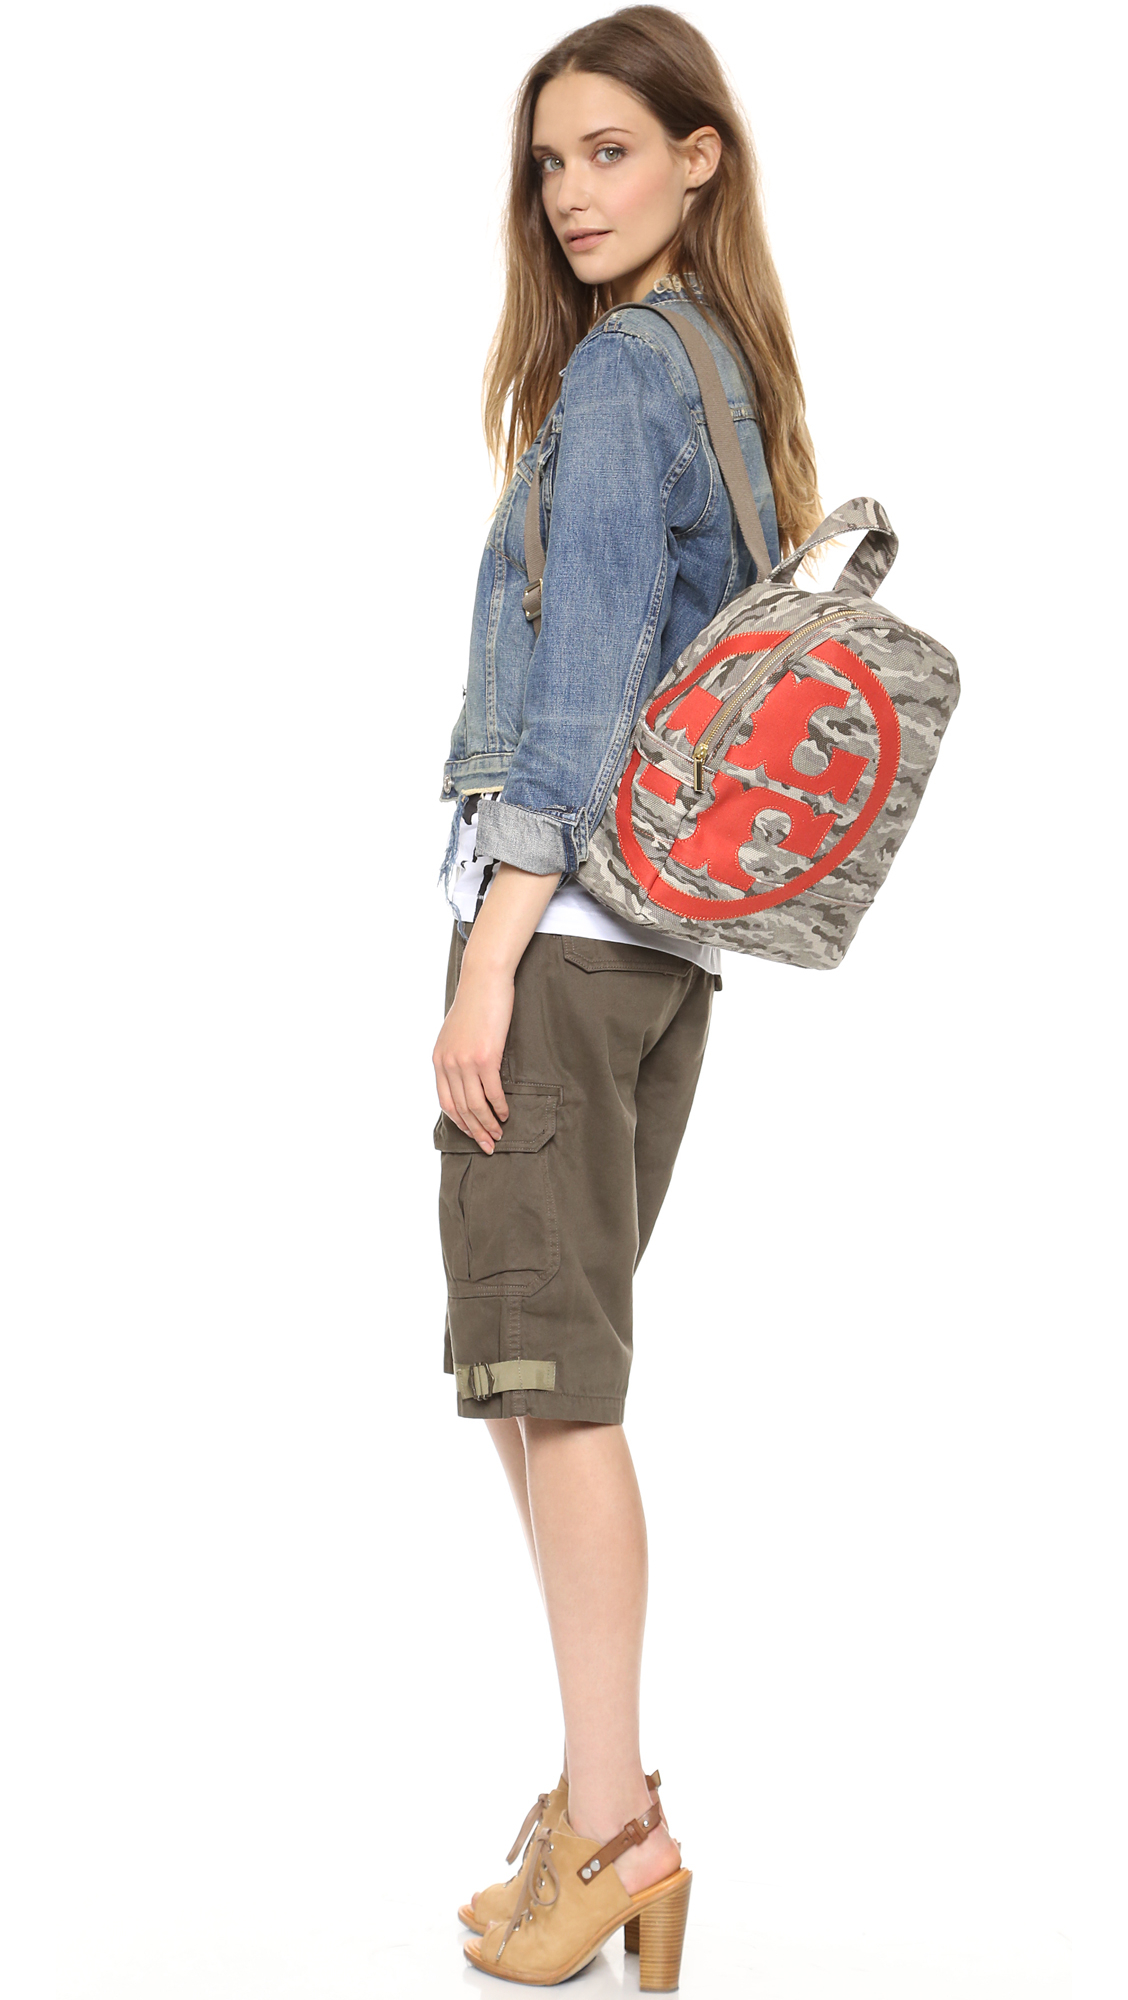 e6b8470234b Tory Burch Camouflage Canvas Logo Backpack in Green - Lyst